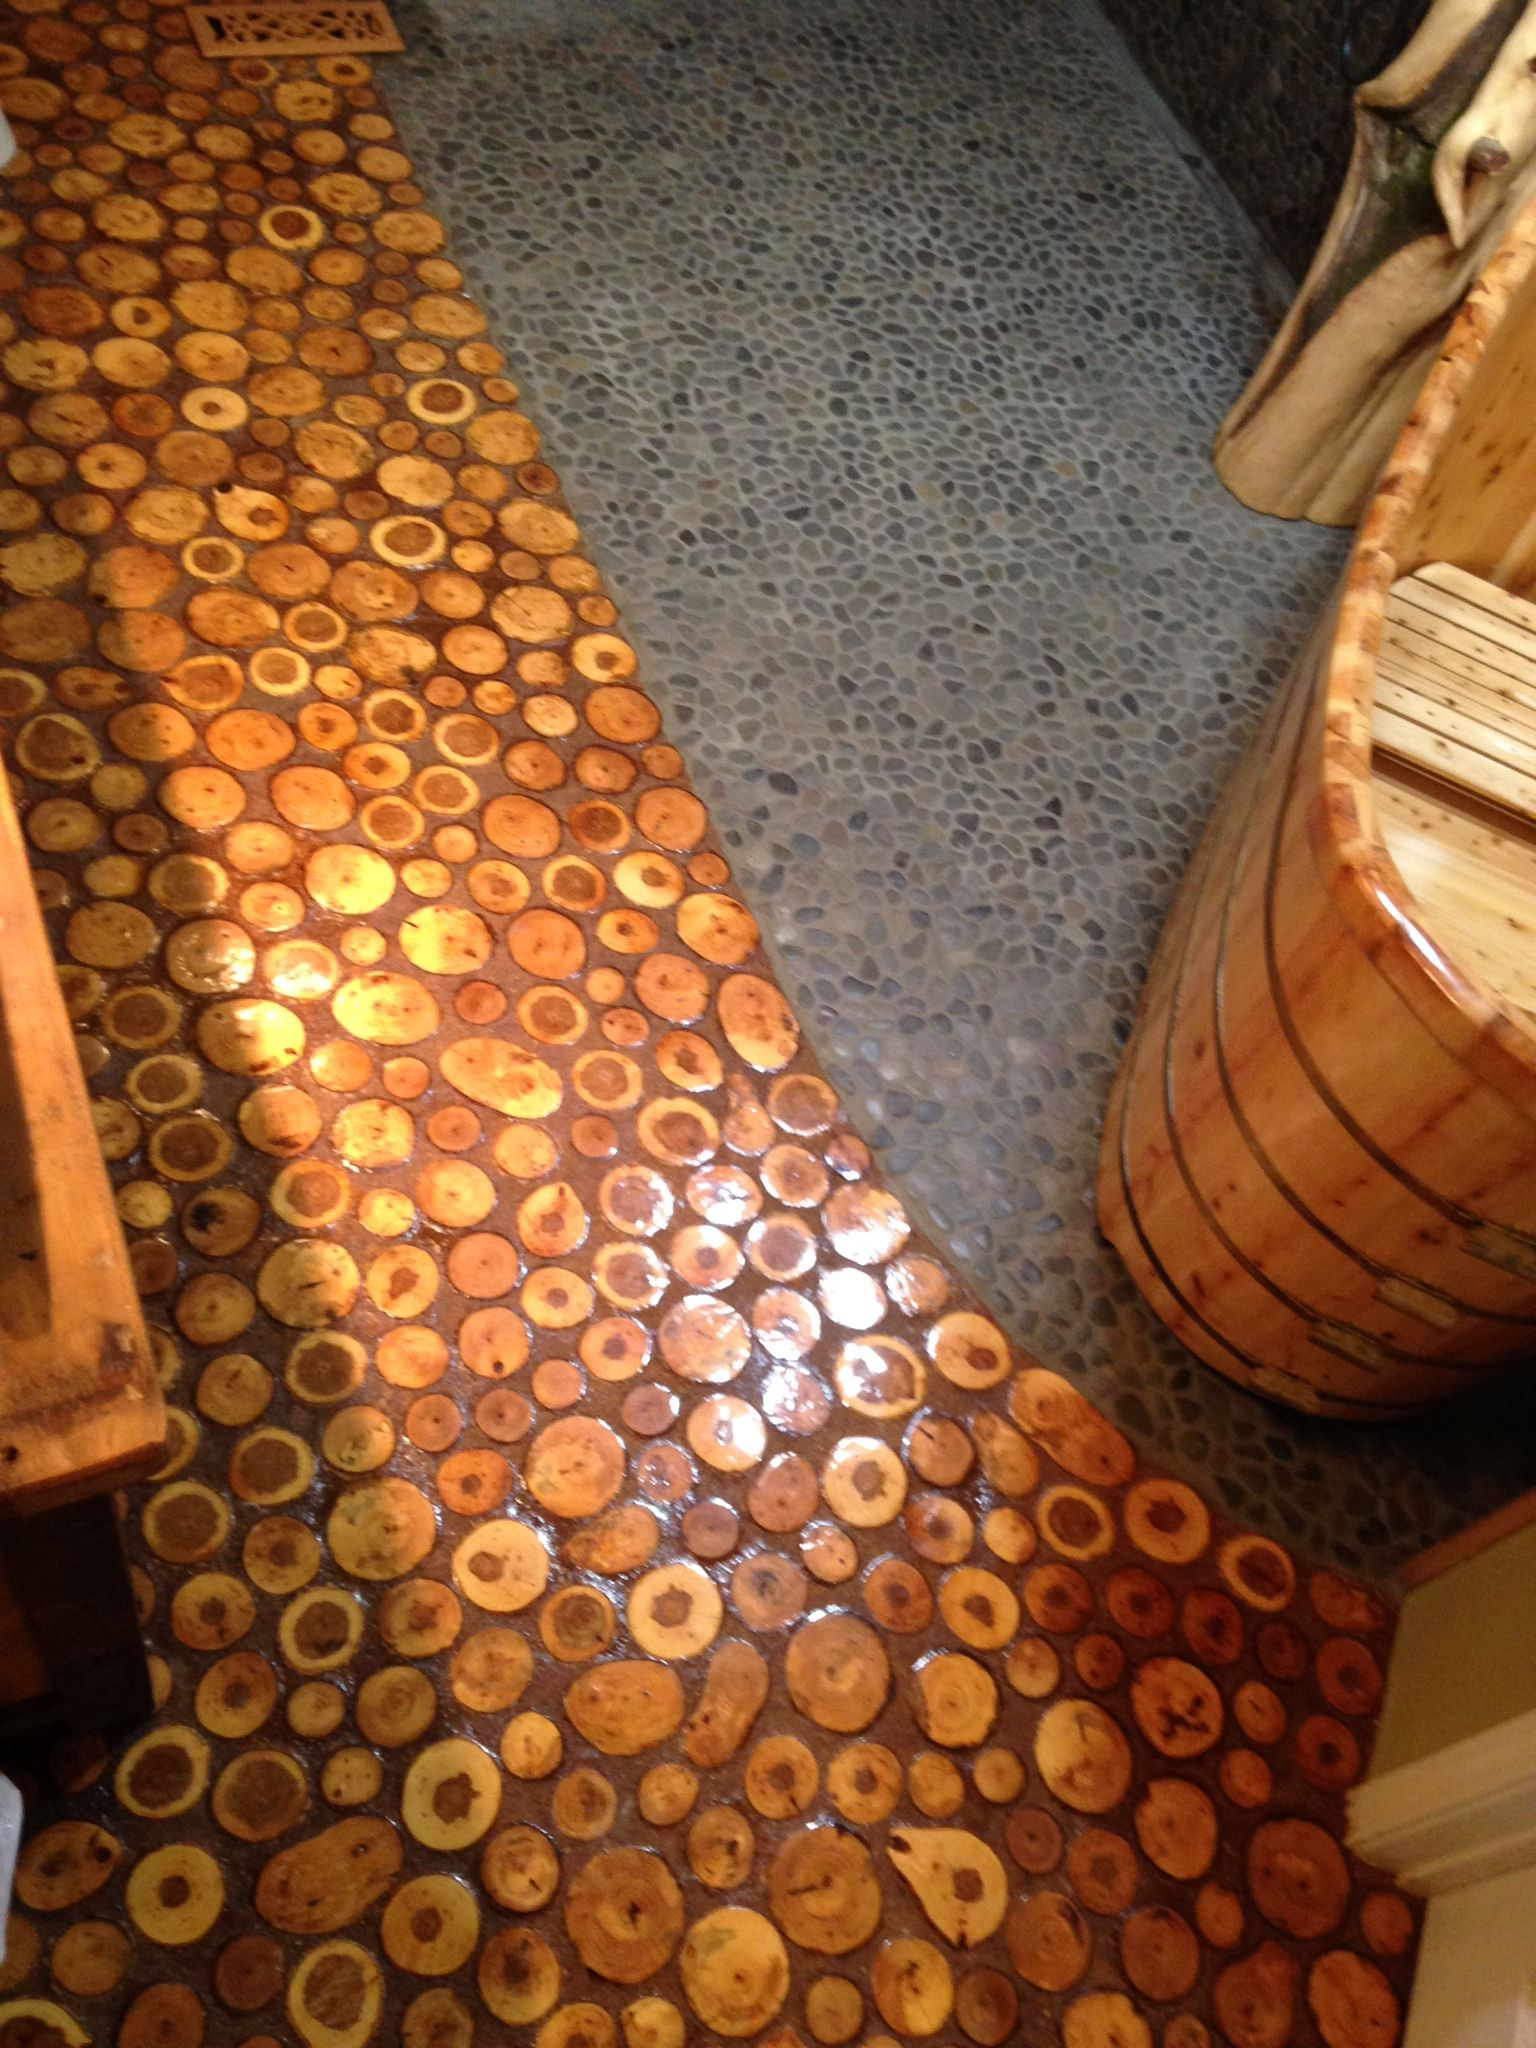 Flooring Made From End Grain Log Wafers And Sawdust Grout